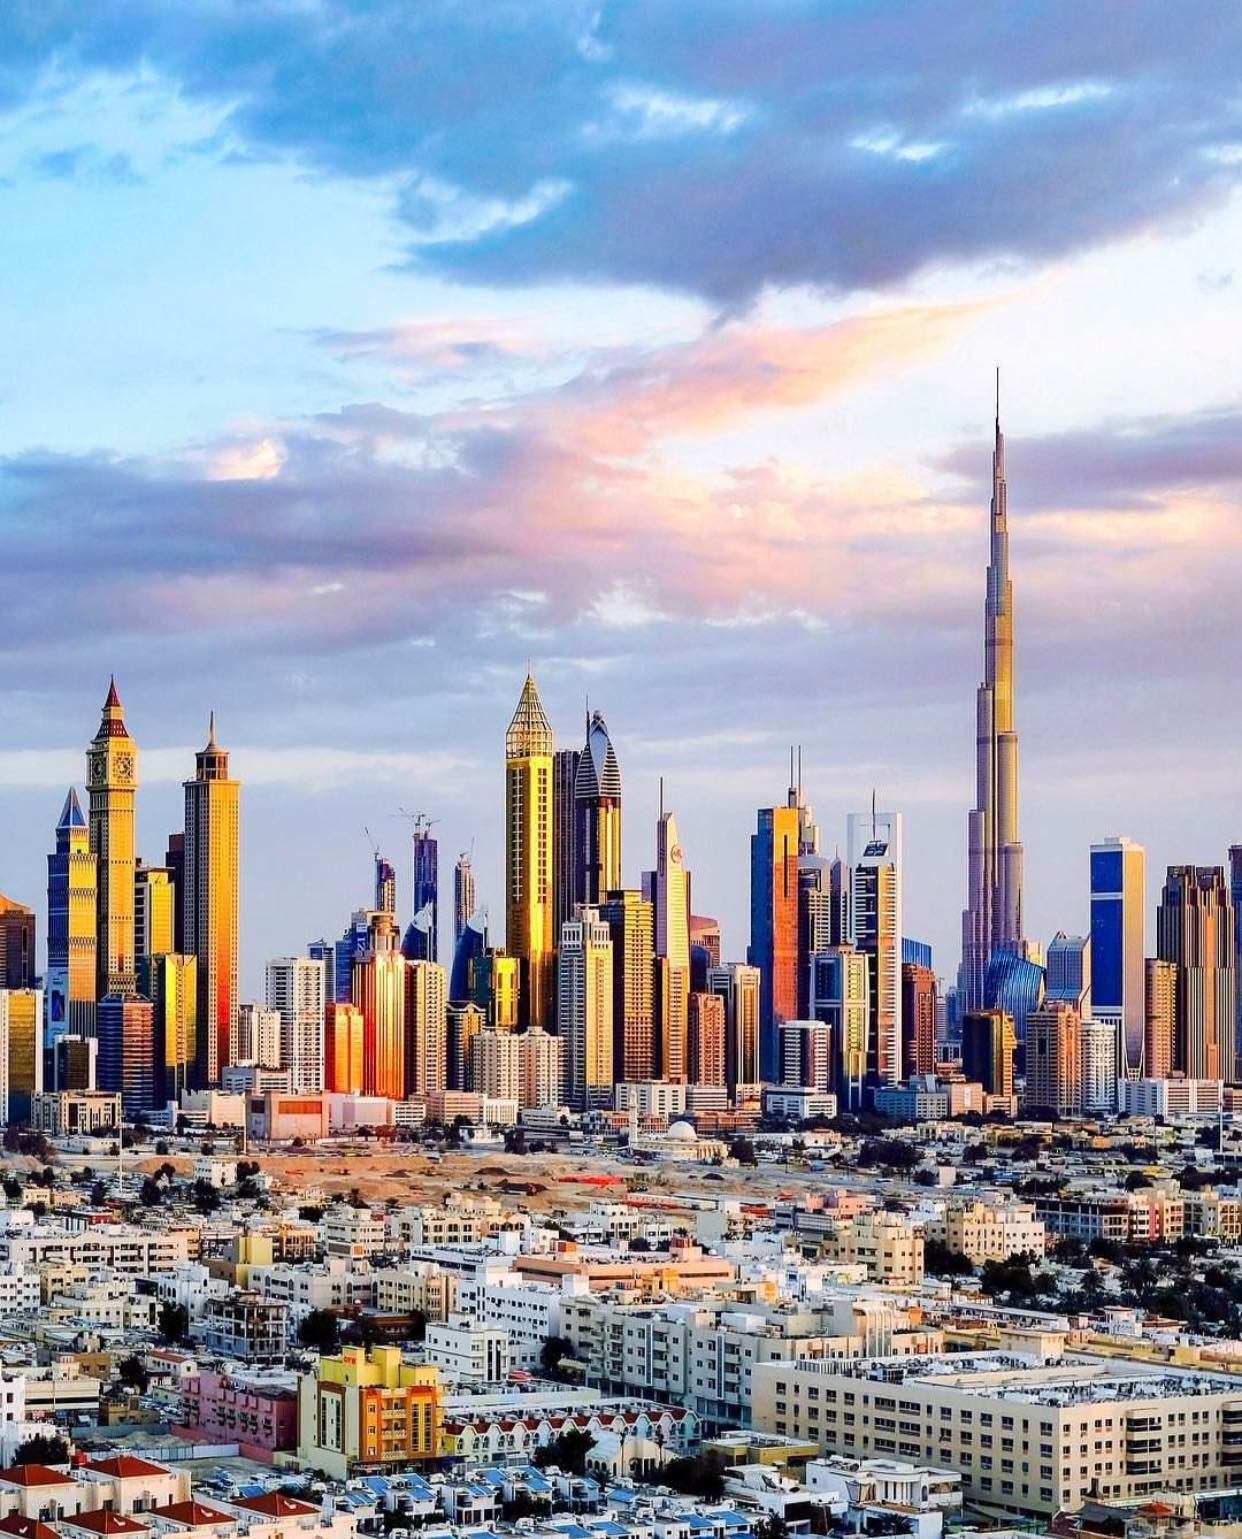 Cheap Apartments For Rent Dubai: Buy, Sell, Rent Apartments And Villas In Dubai UAE In 2019